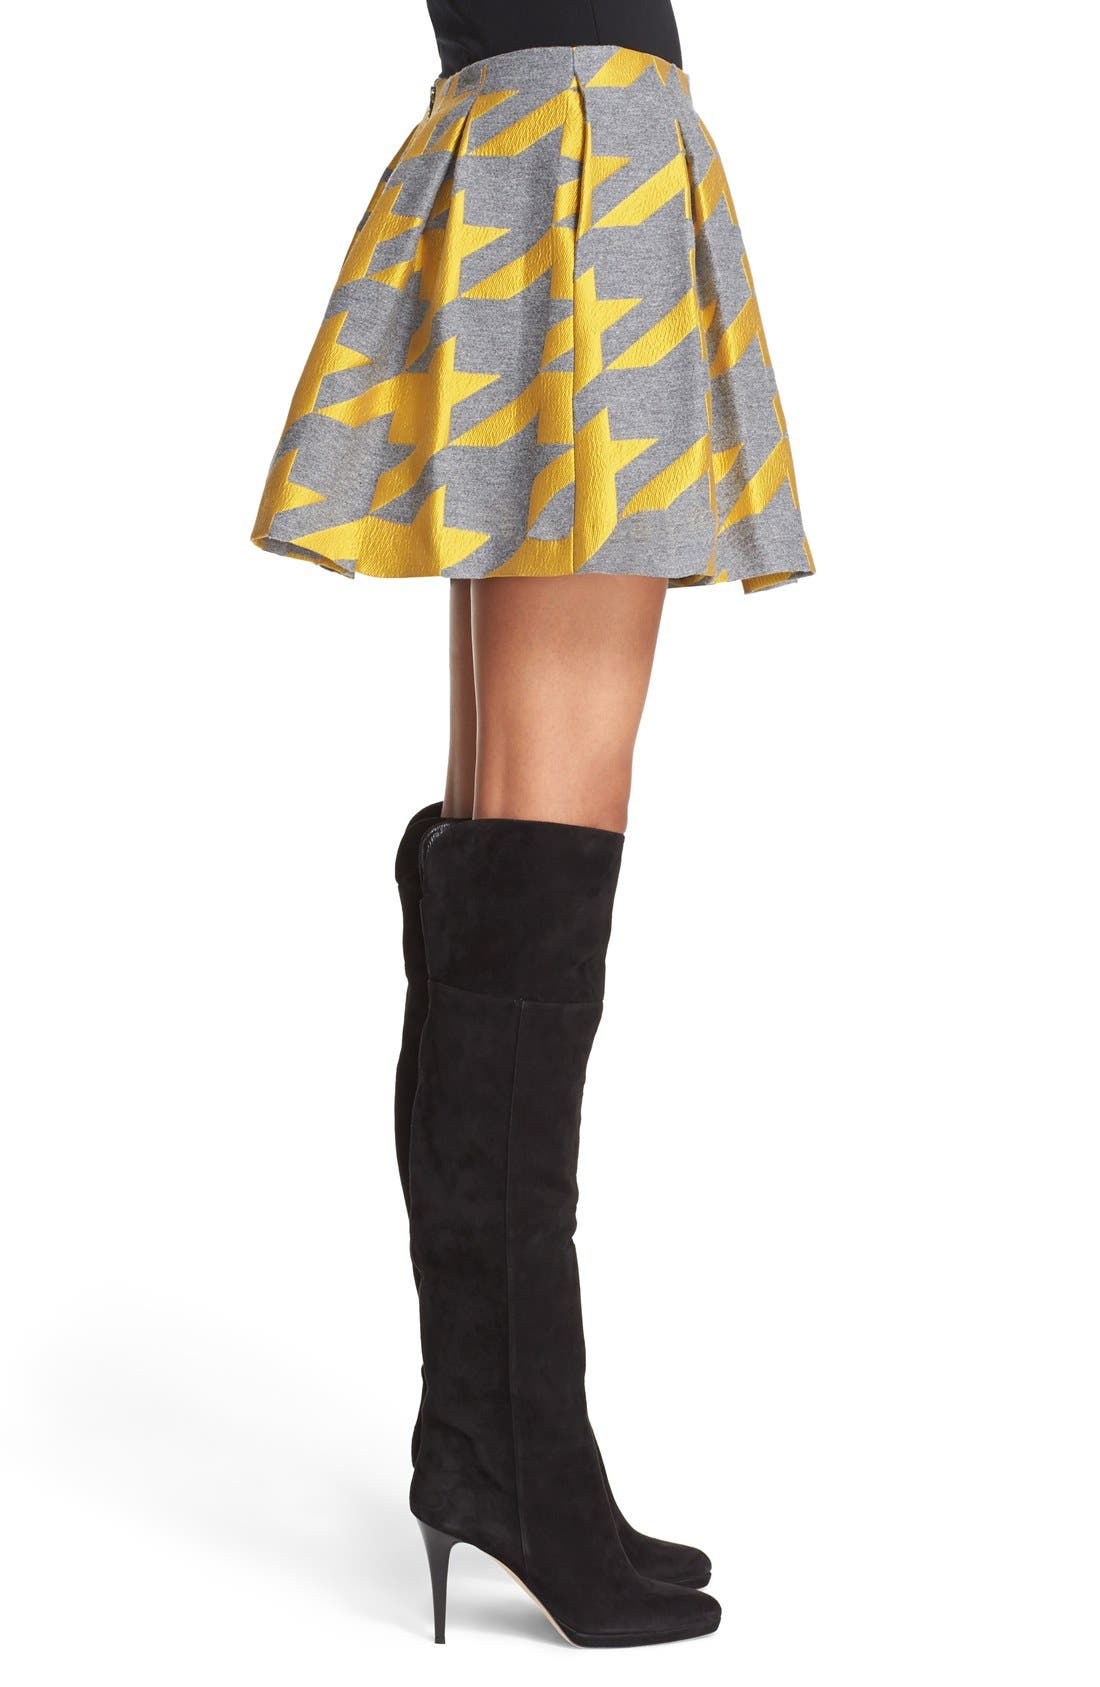 ALICE + OLIVIA,                             'Connor' Oversize Houndstooth Lampshade Skirt,                             Alternate thumbnail 6, color,                             700